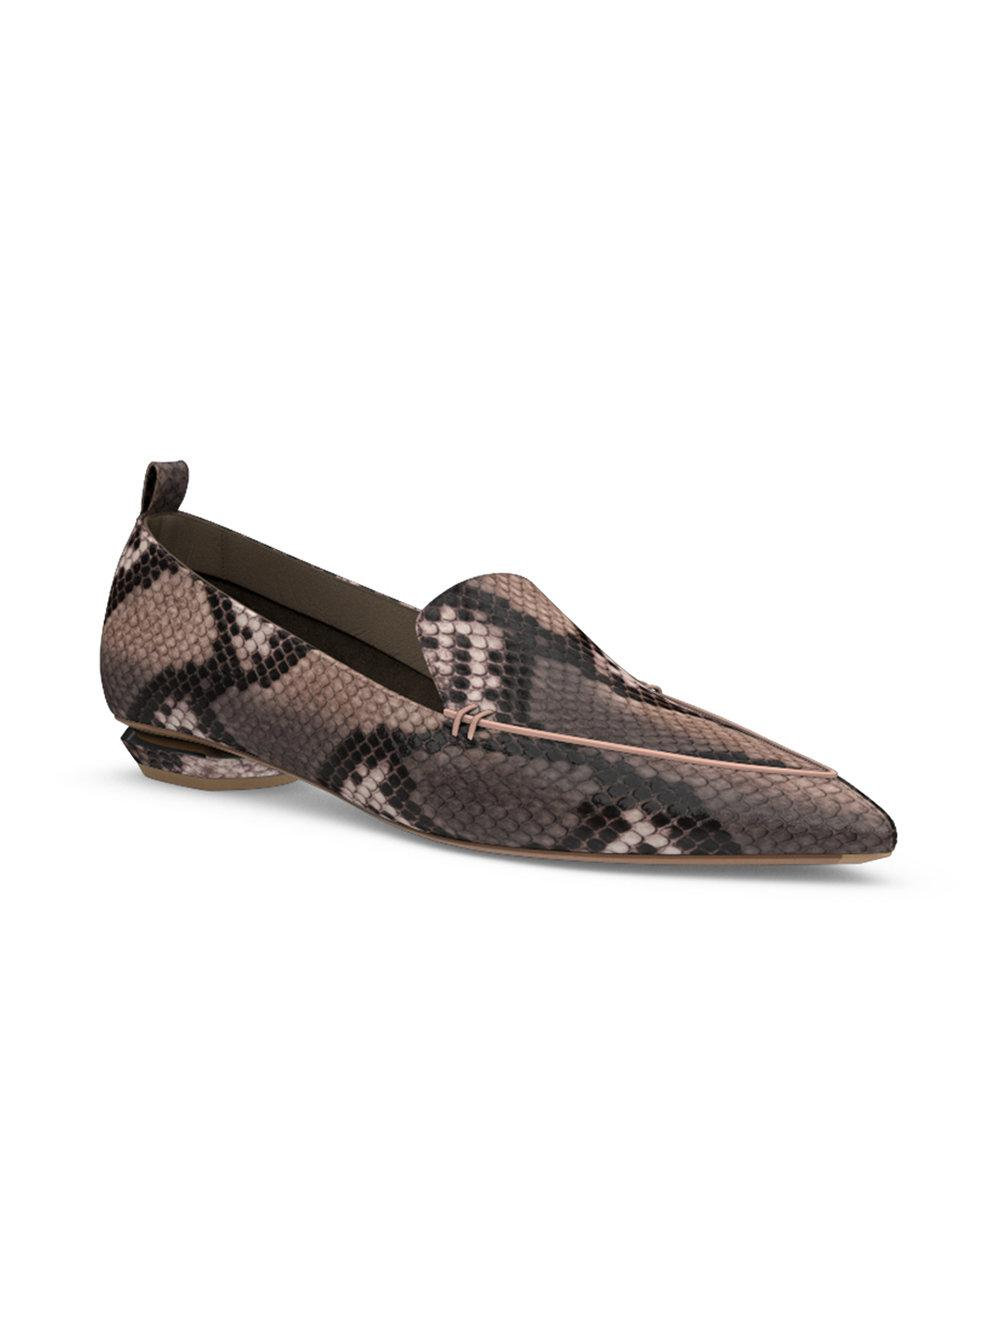 outlet shop for cheap sale wholesale price Nicholas Kirkwood Leather Python-Trimmed Loafers ebay cheap price 7syDcTZM